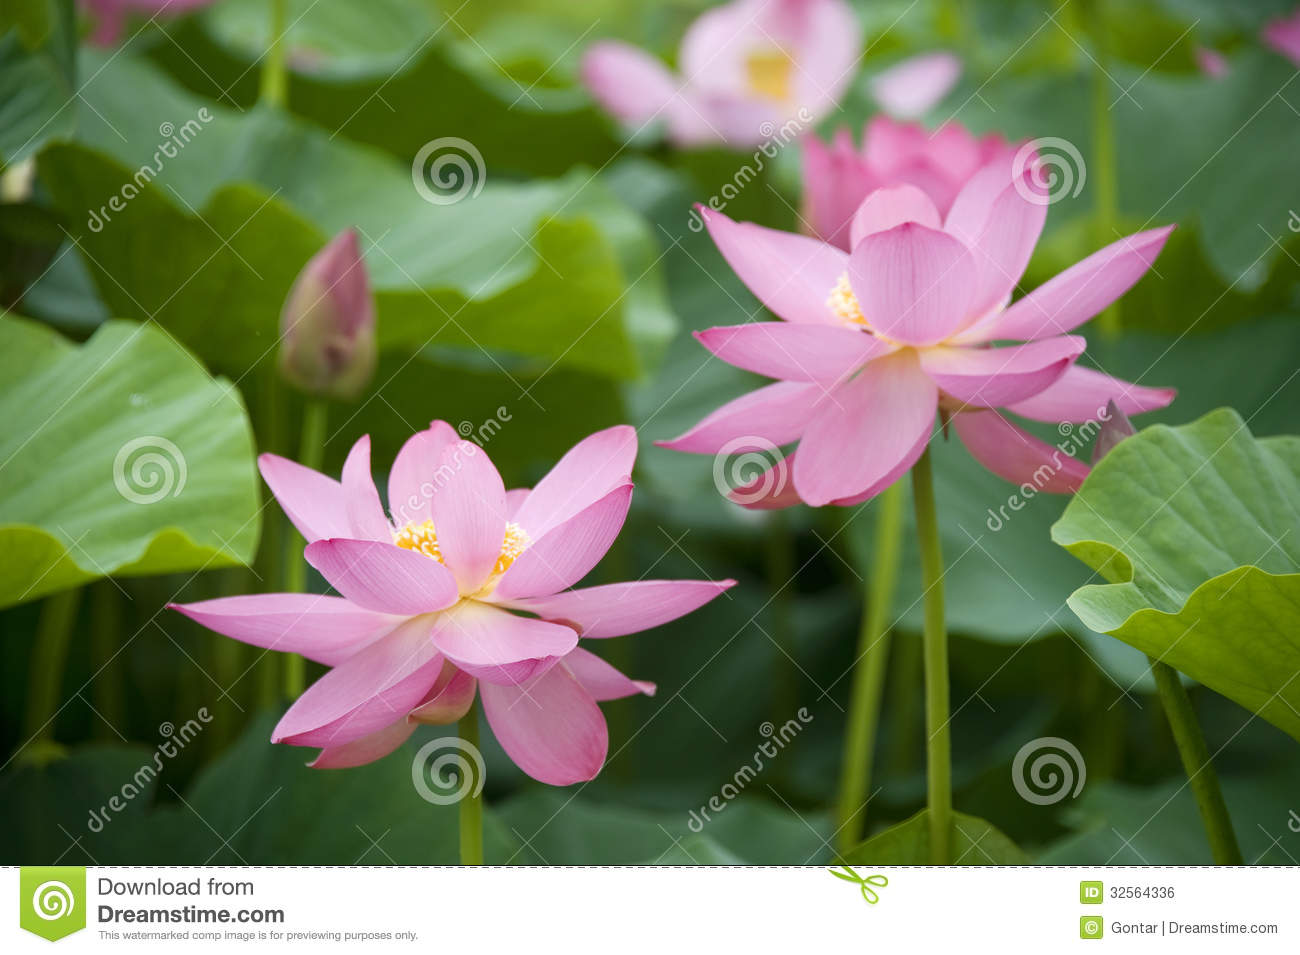 lotus blossoms stock photos, images,  pictures   images, Beautiful flower